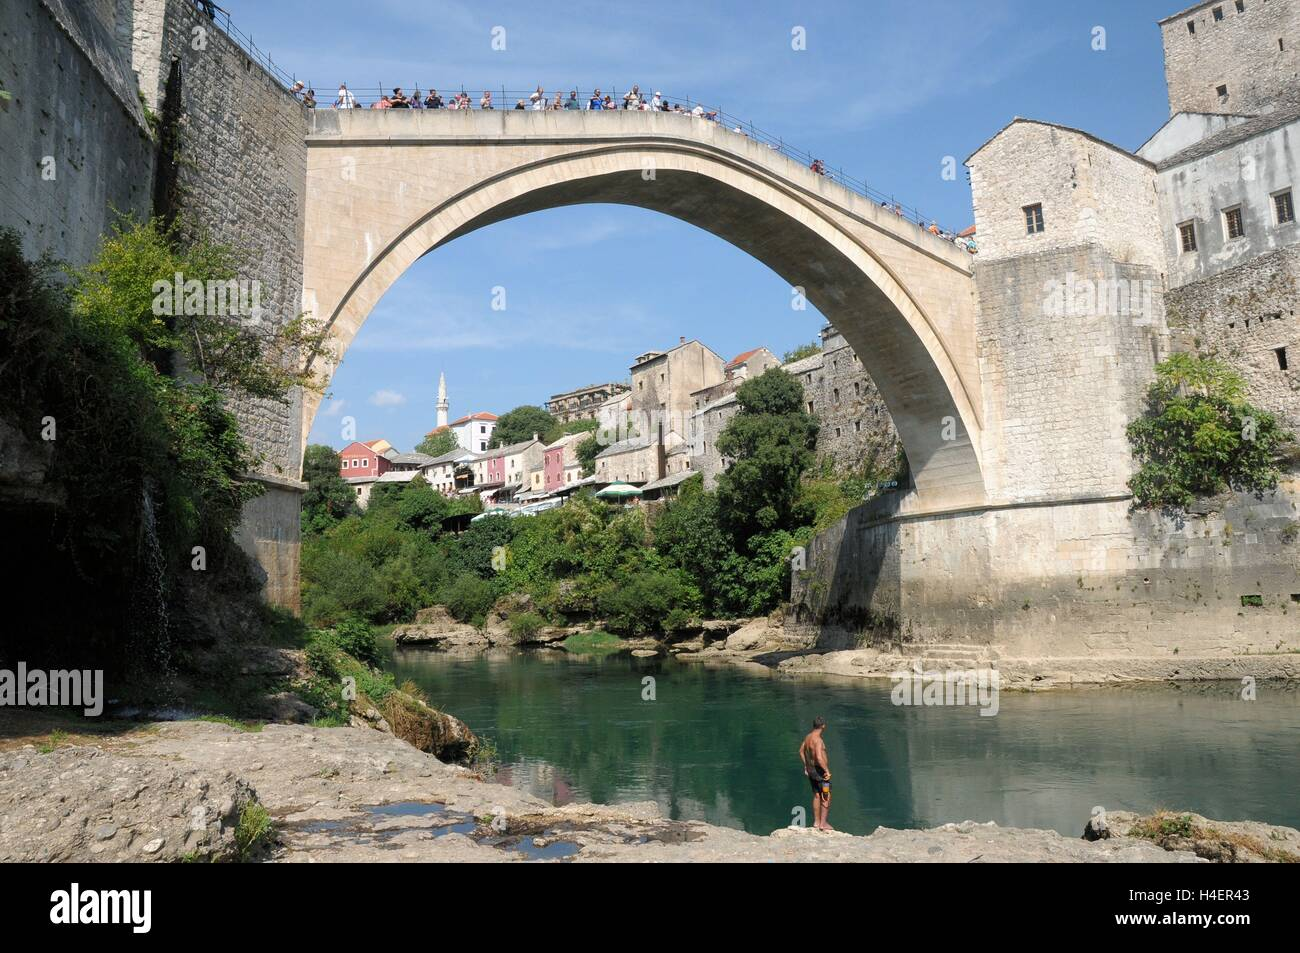 The Stari Most bridge, Bosnia Herzegovina - Stock Image